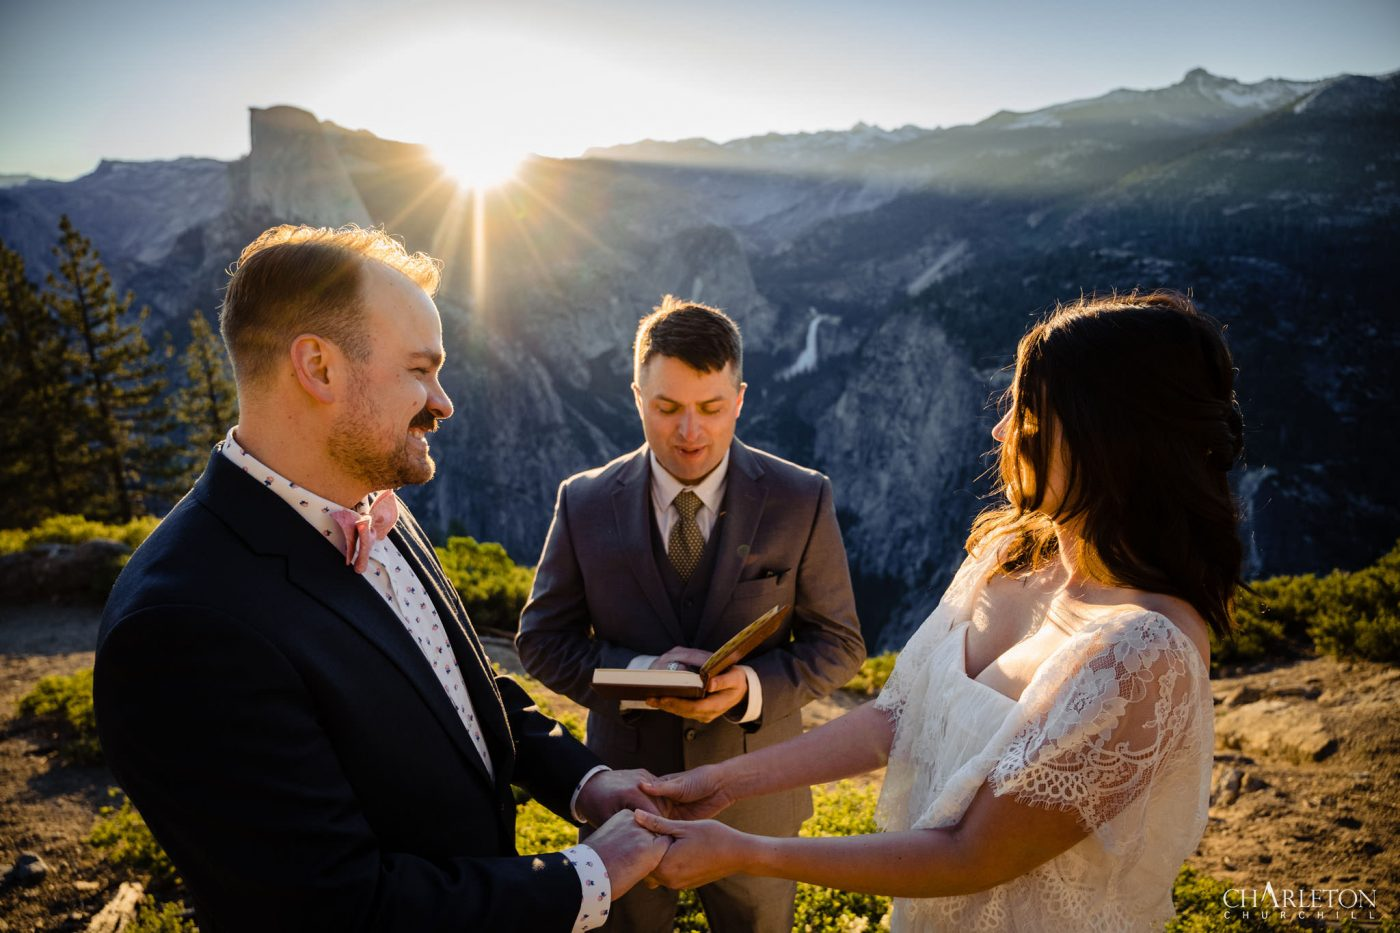 yosemite wedding ceremony at sunrise near glacier point in yosemite